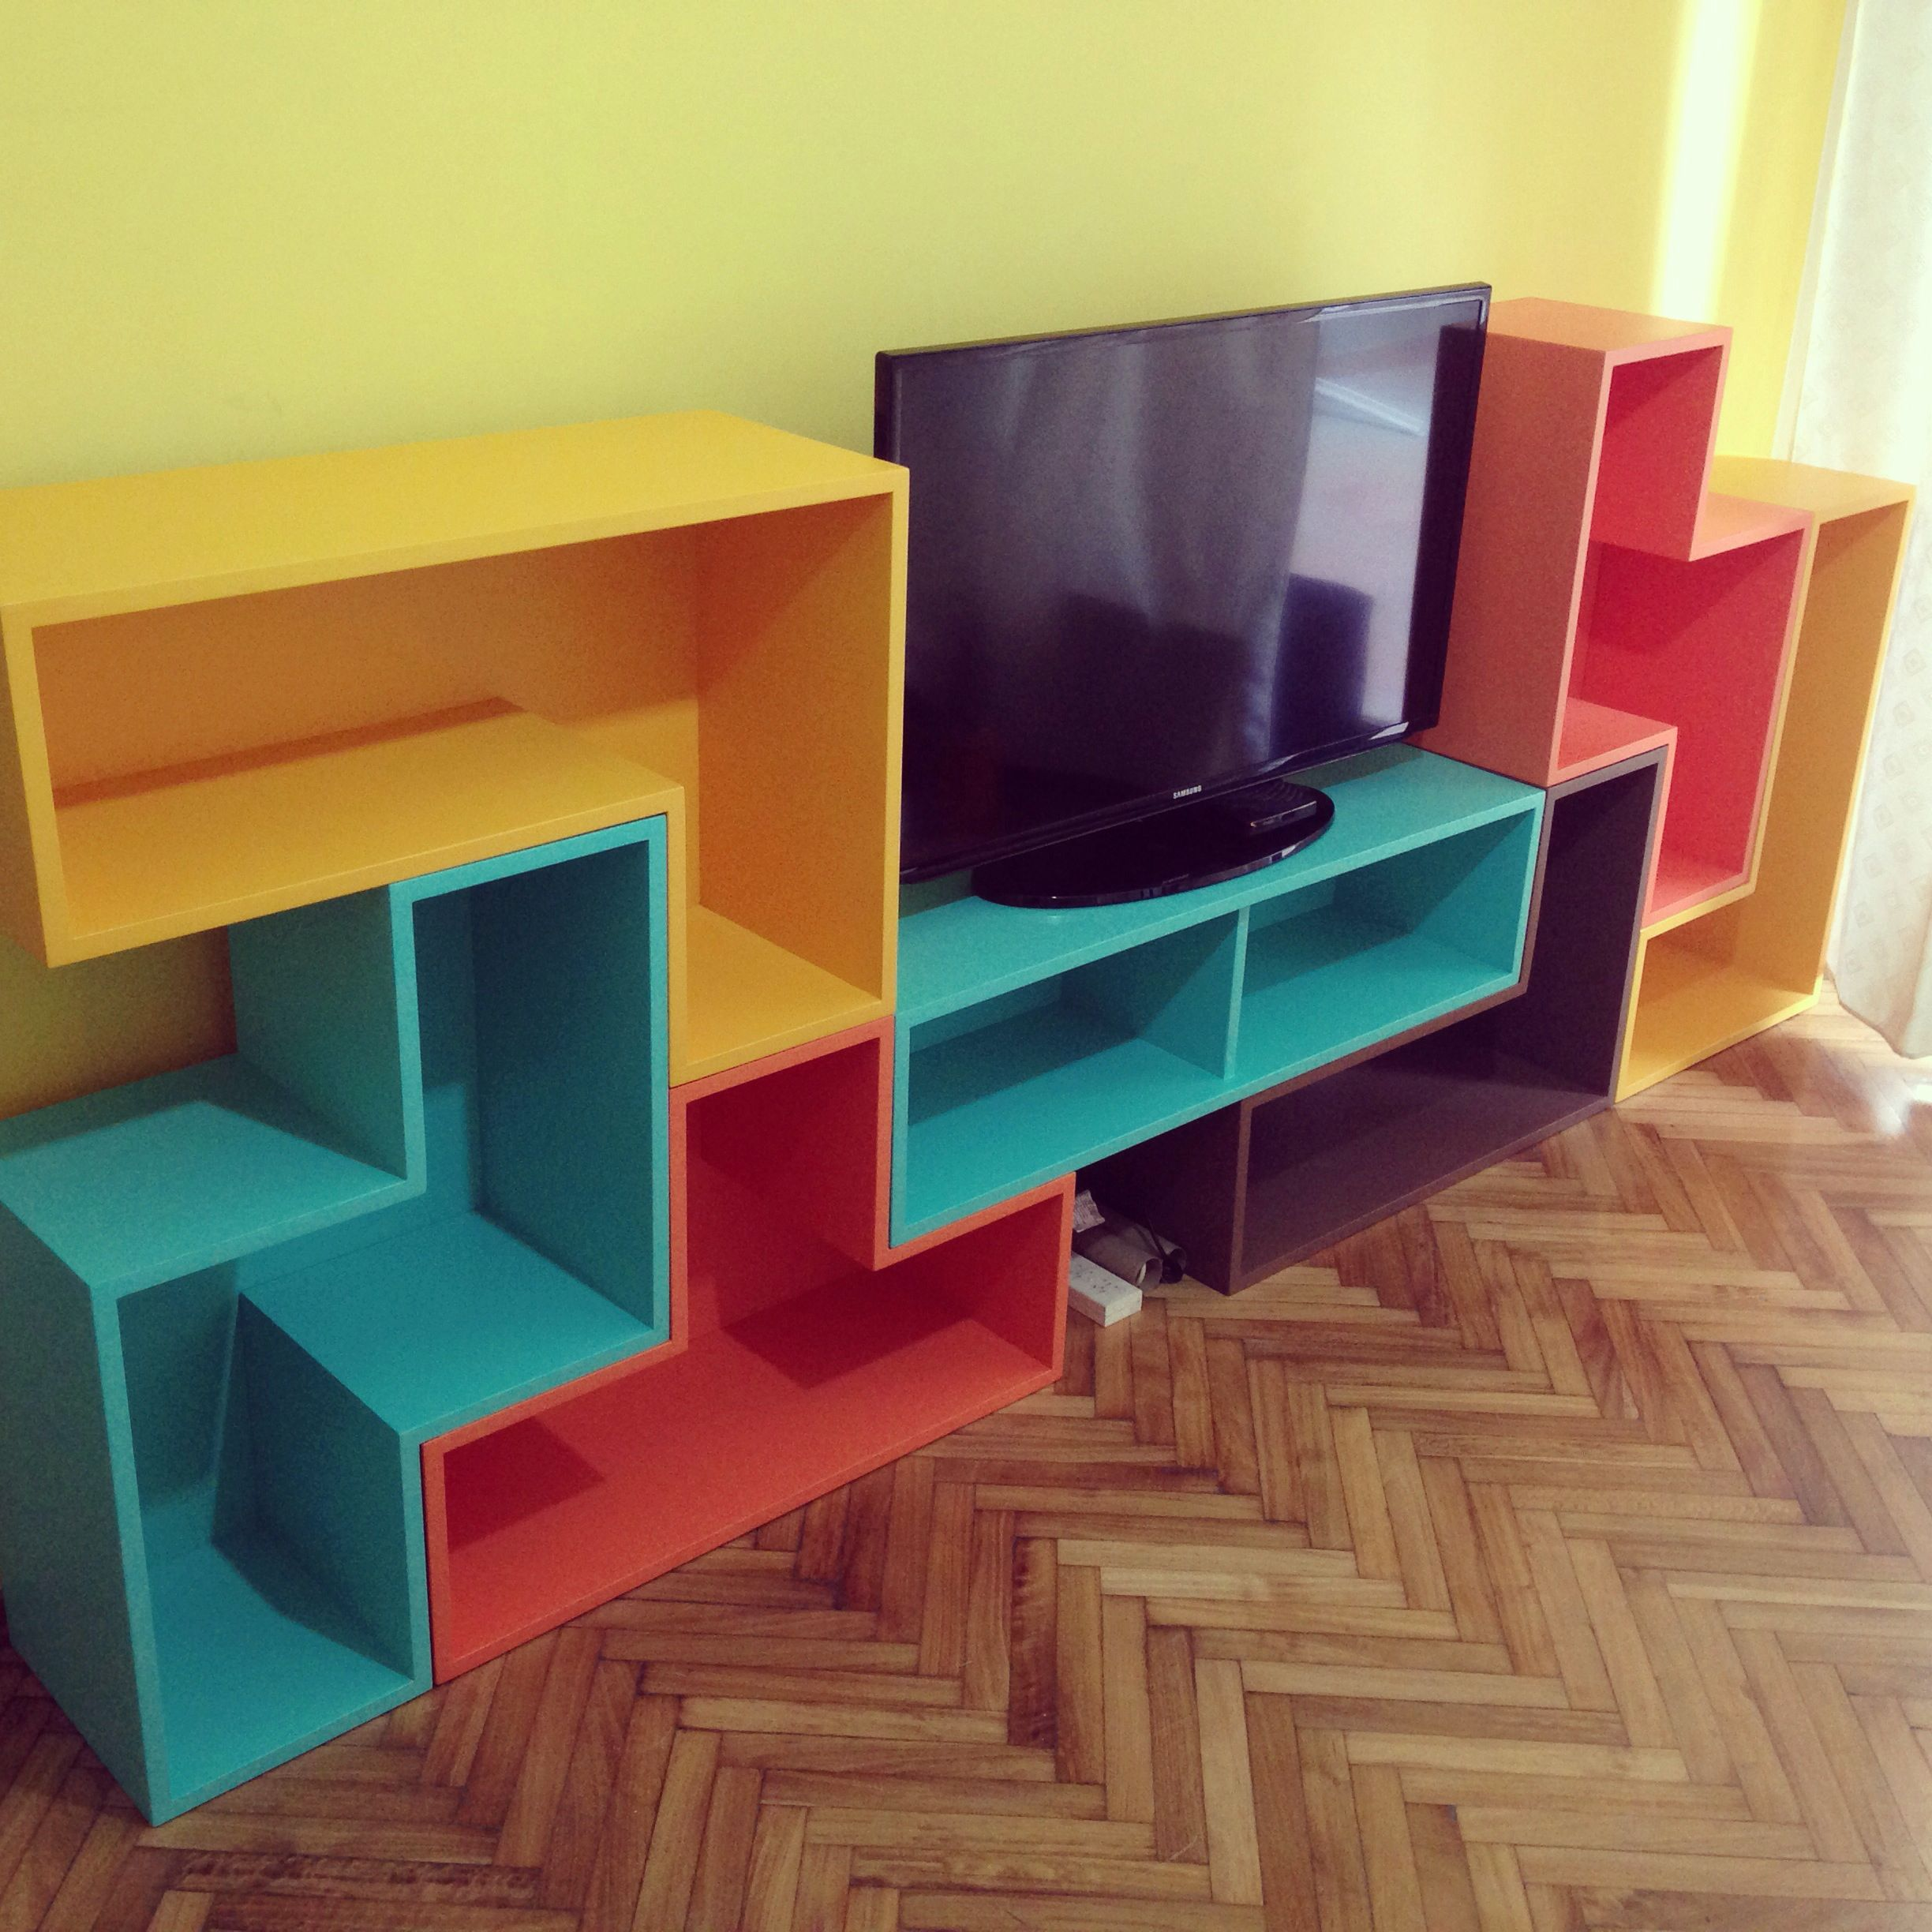 Tetris furniture for my apartment   - Made by Bacardo   Pinterest ...